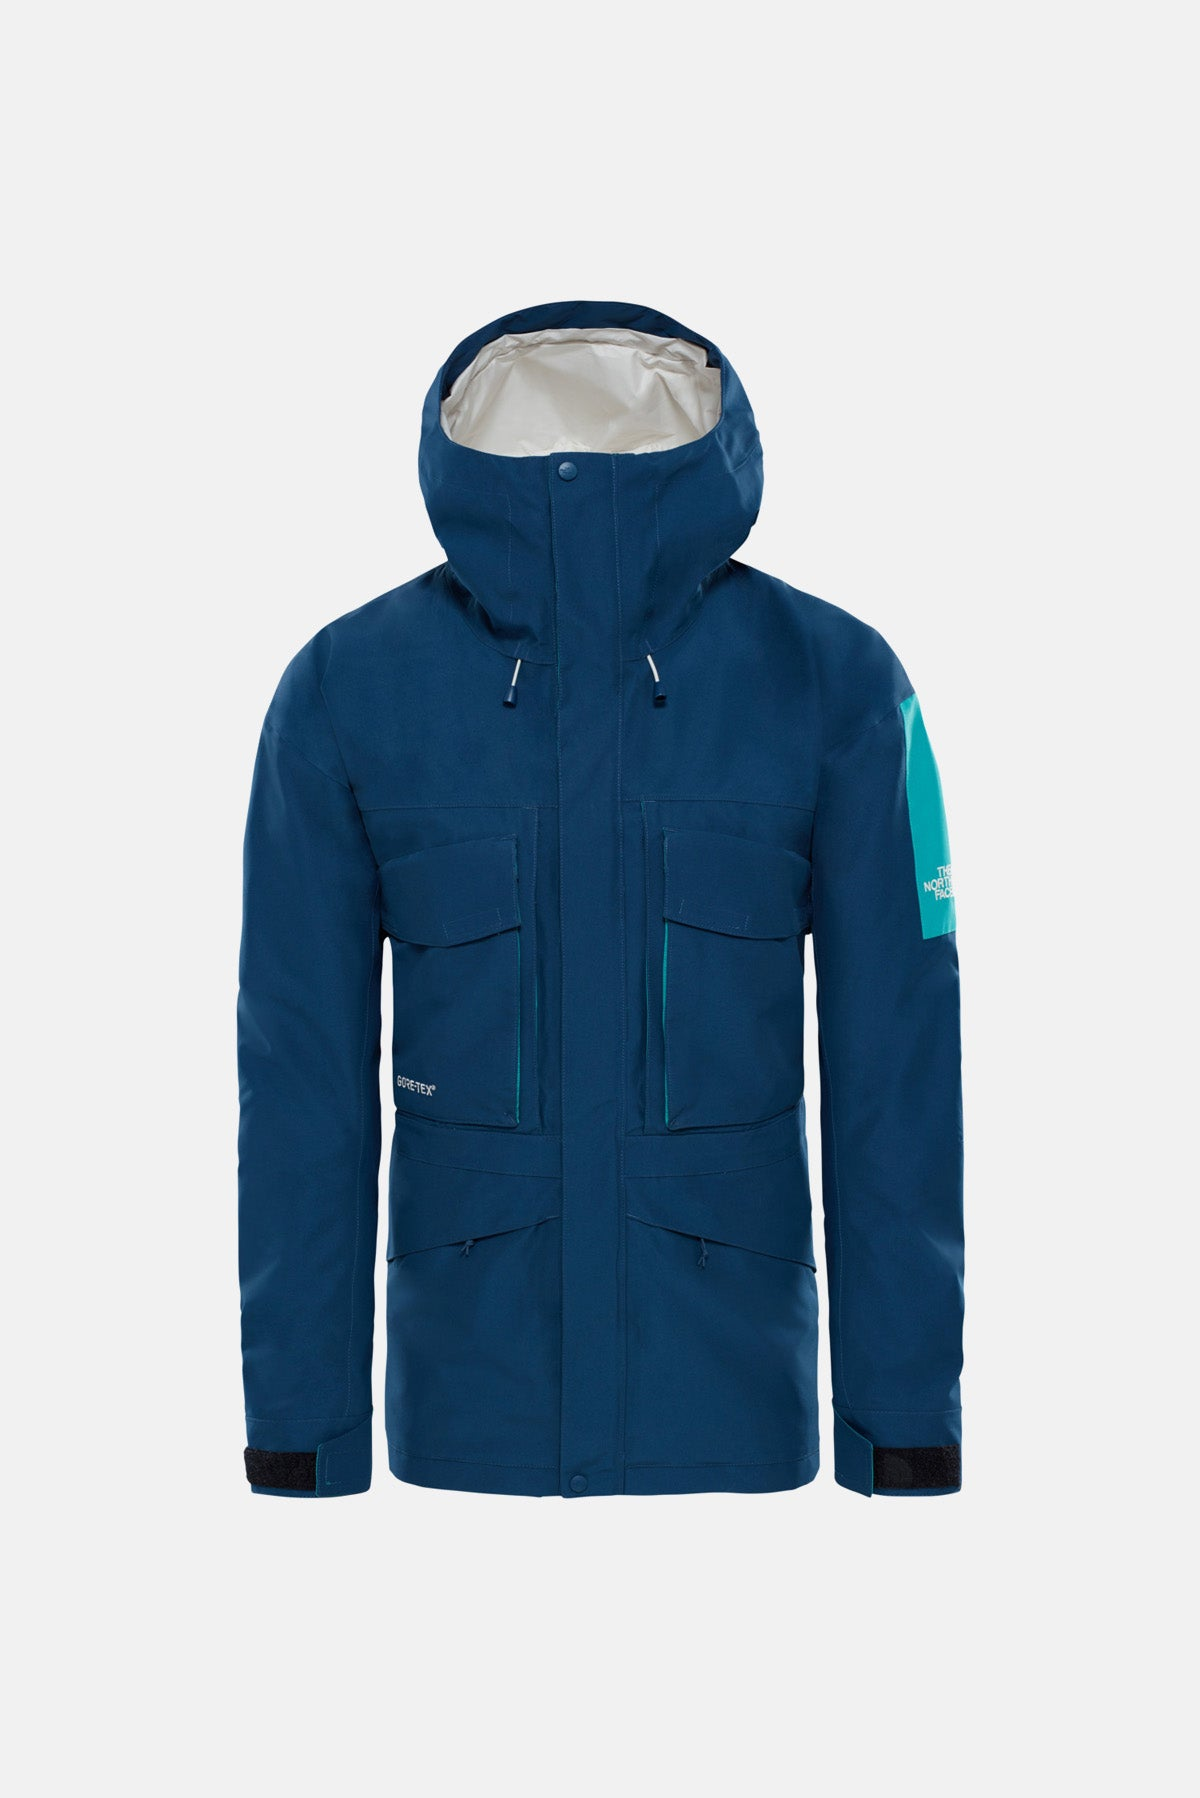 07e1551d782d North Face Capsule Fantasy Ridge GTX Jacket available from Priory